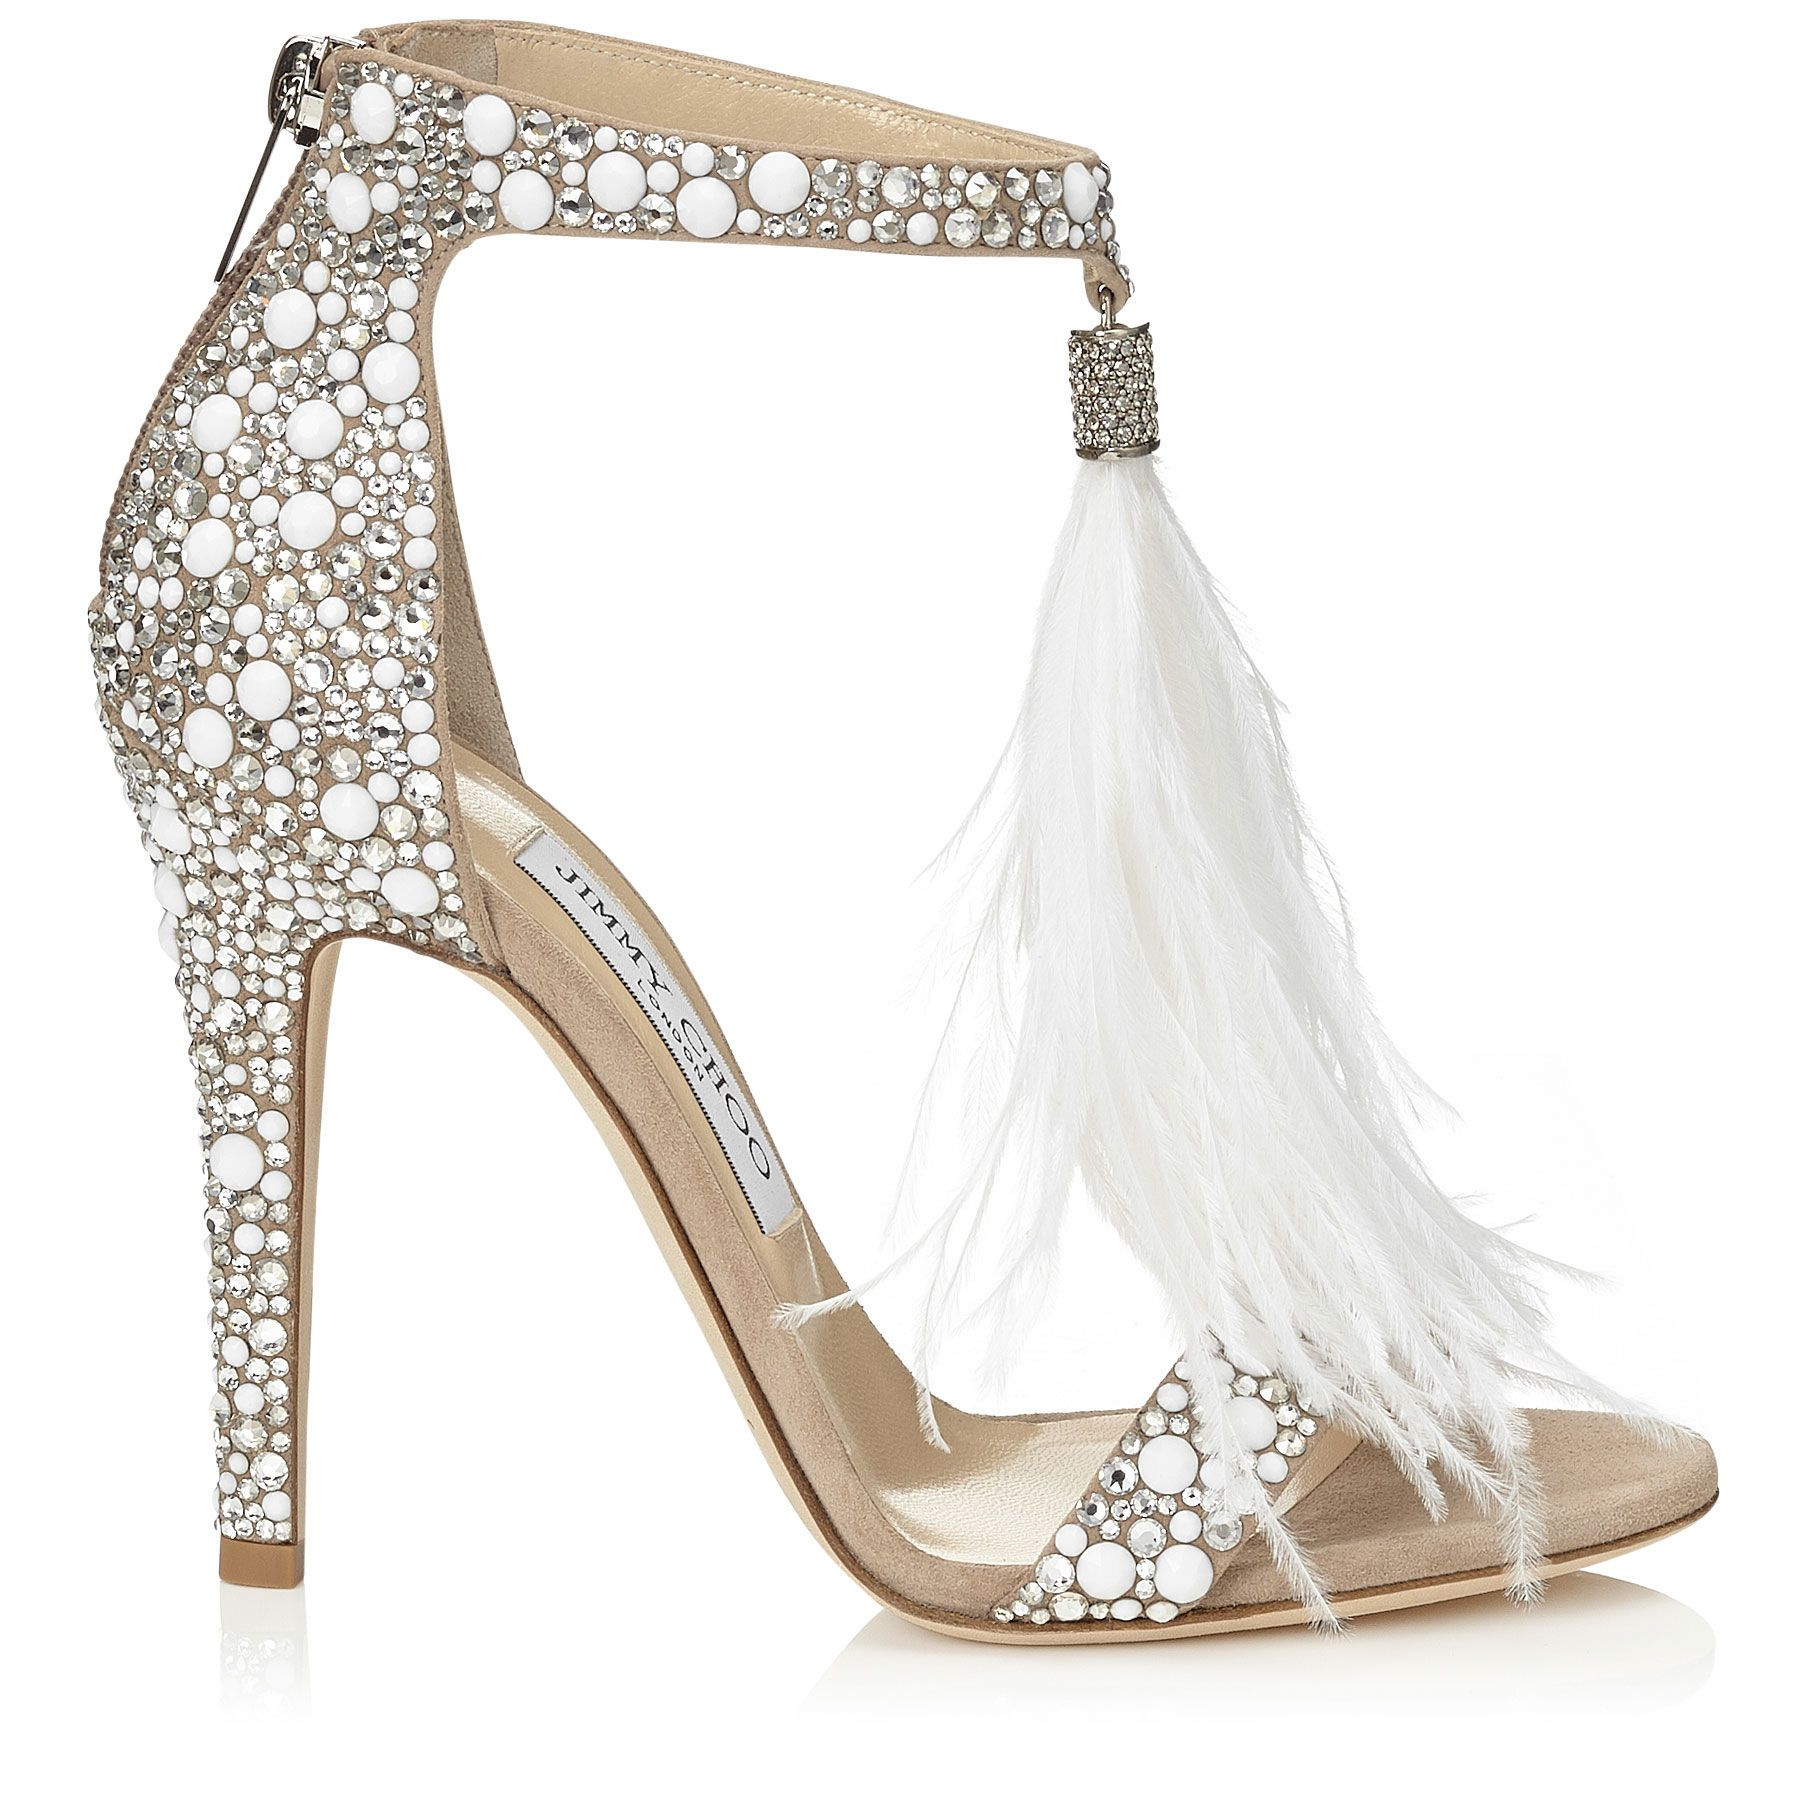 white suede and hot fix crystal embellished sandals with an ostrich rh pinterest com